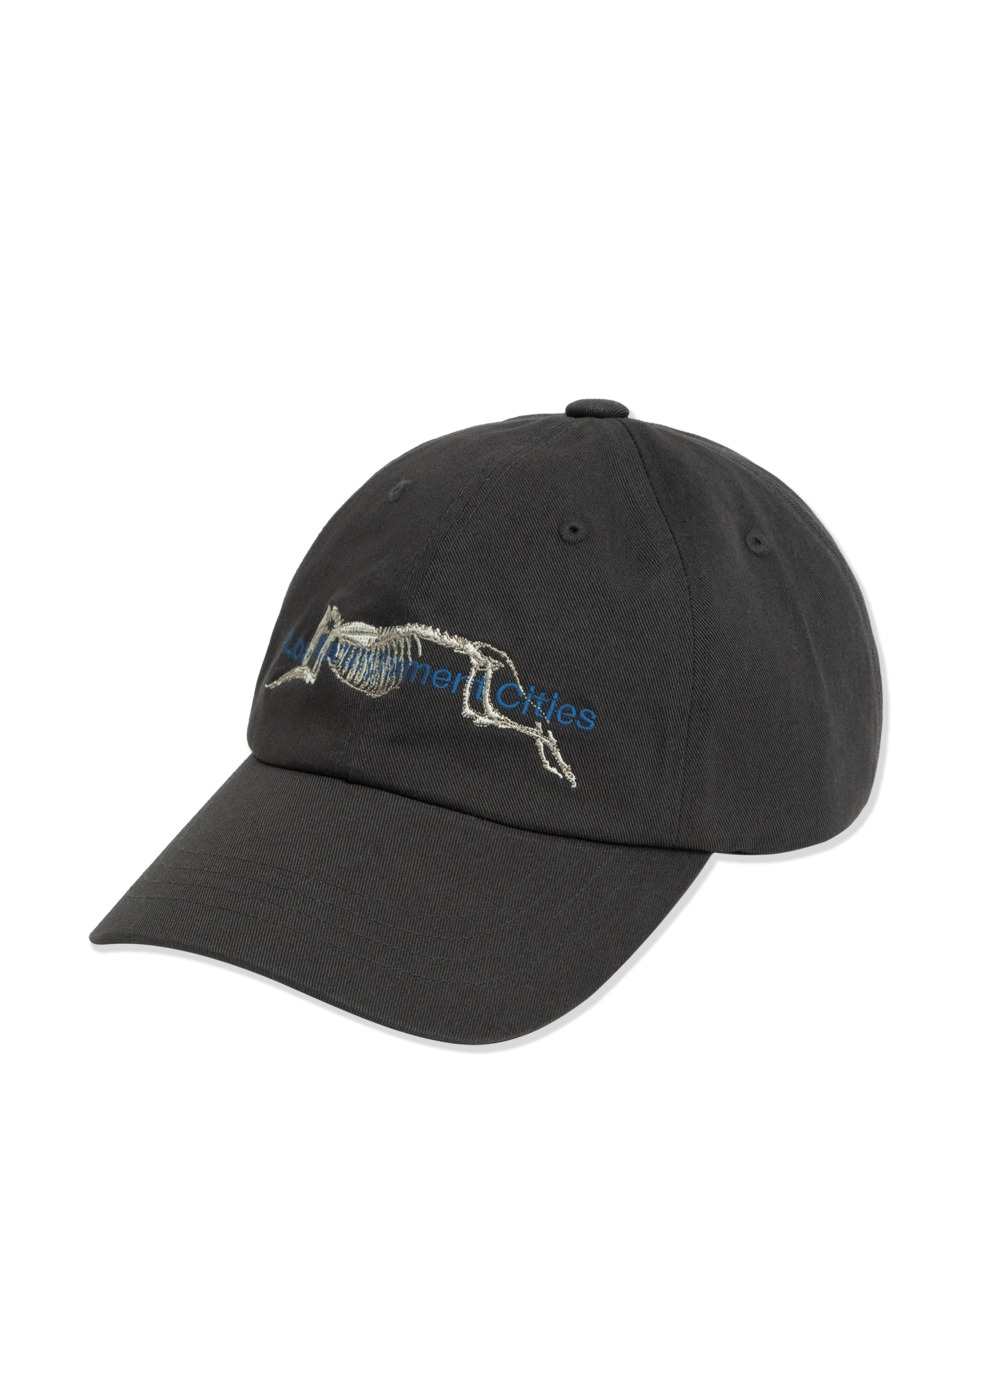 LMC SKELETON DOG 6 PANEL CAP charcoal